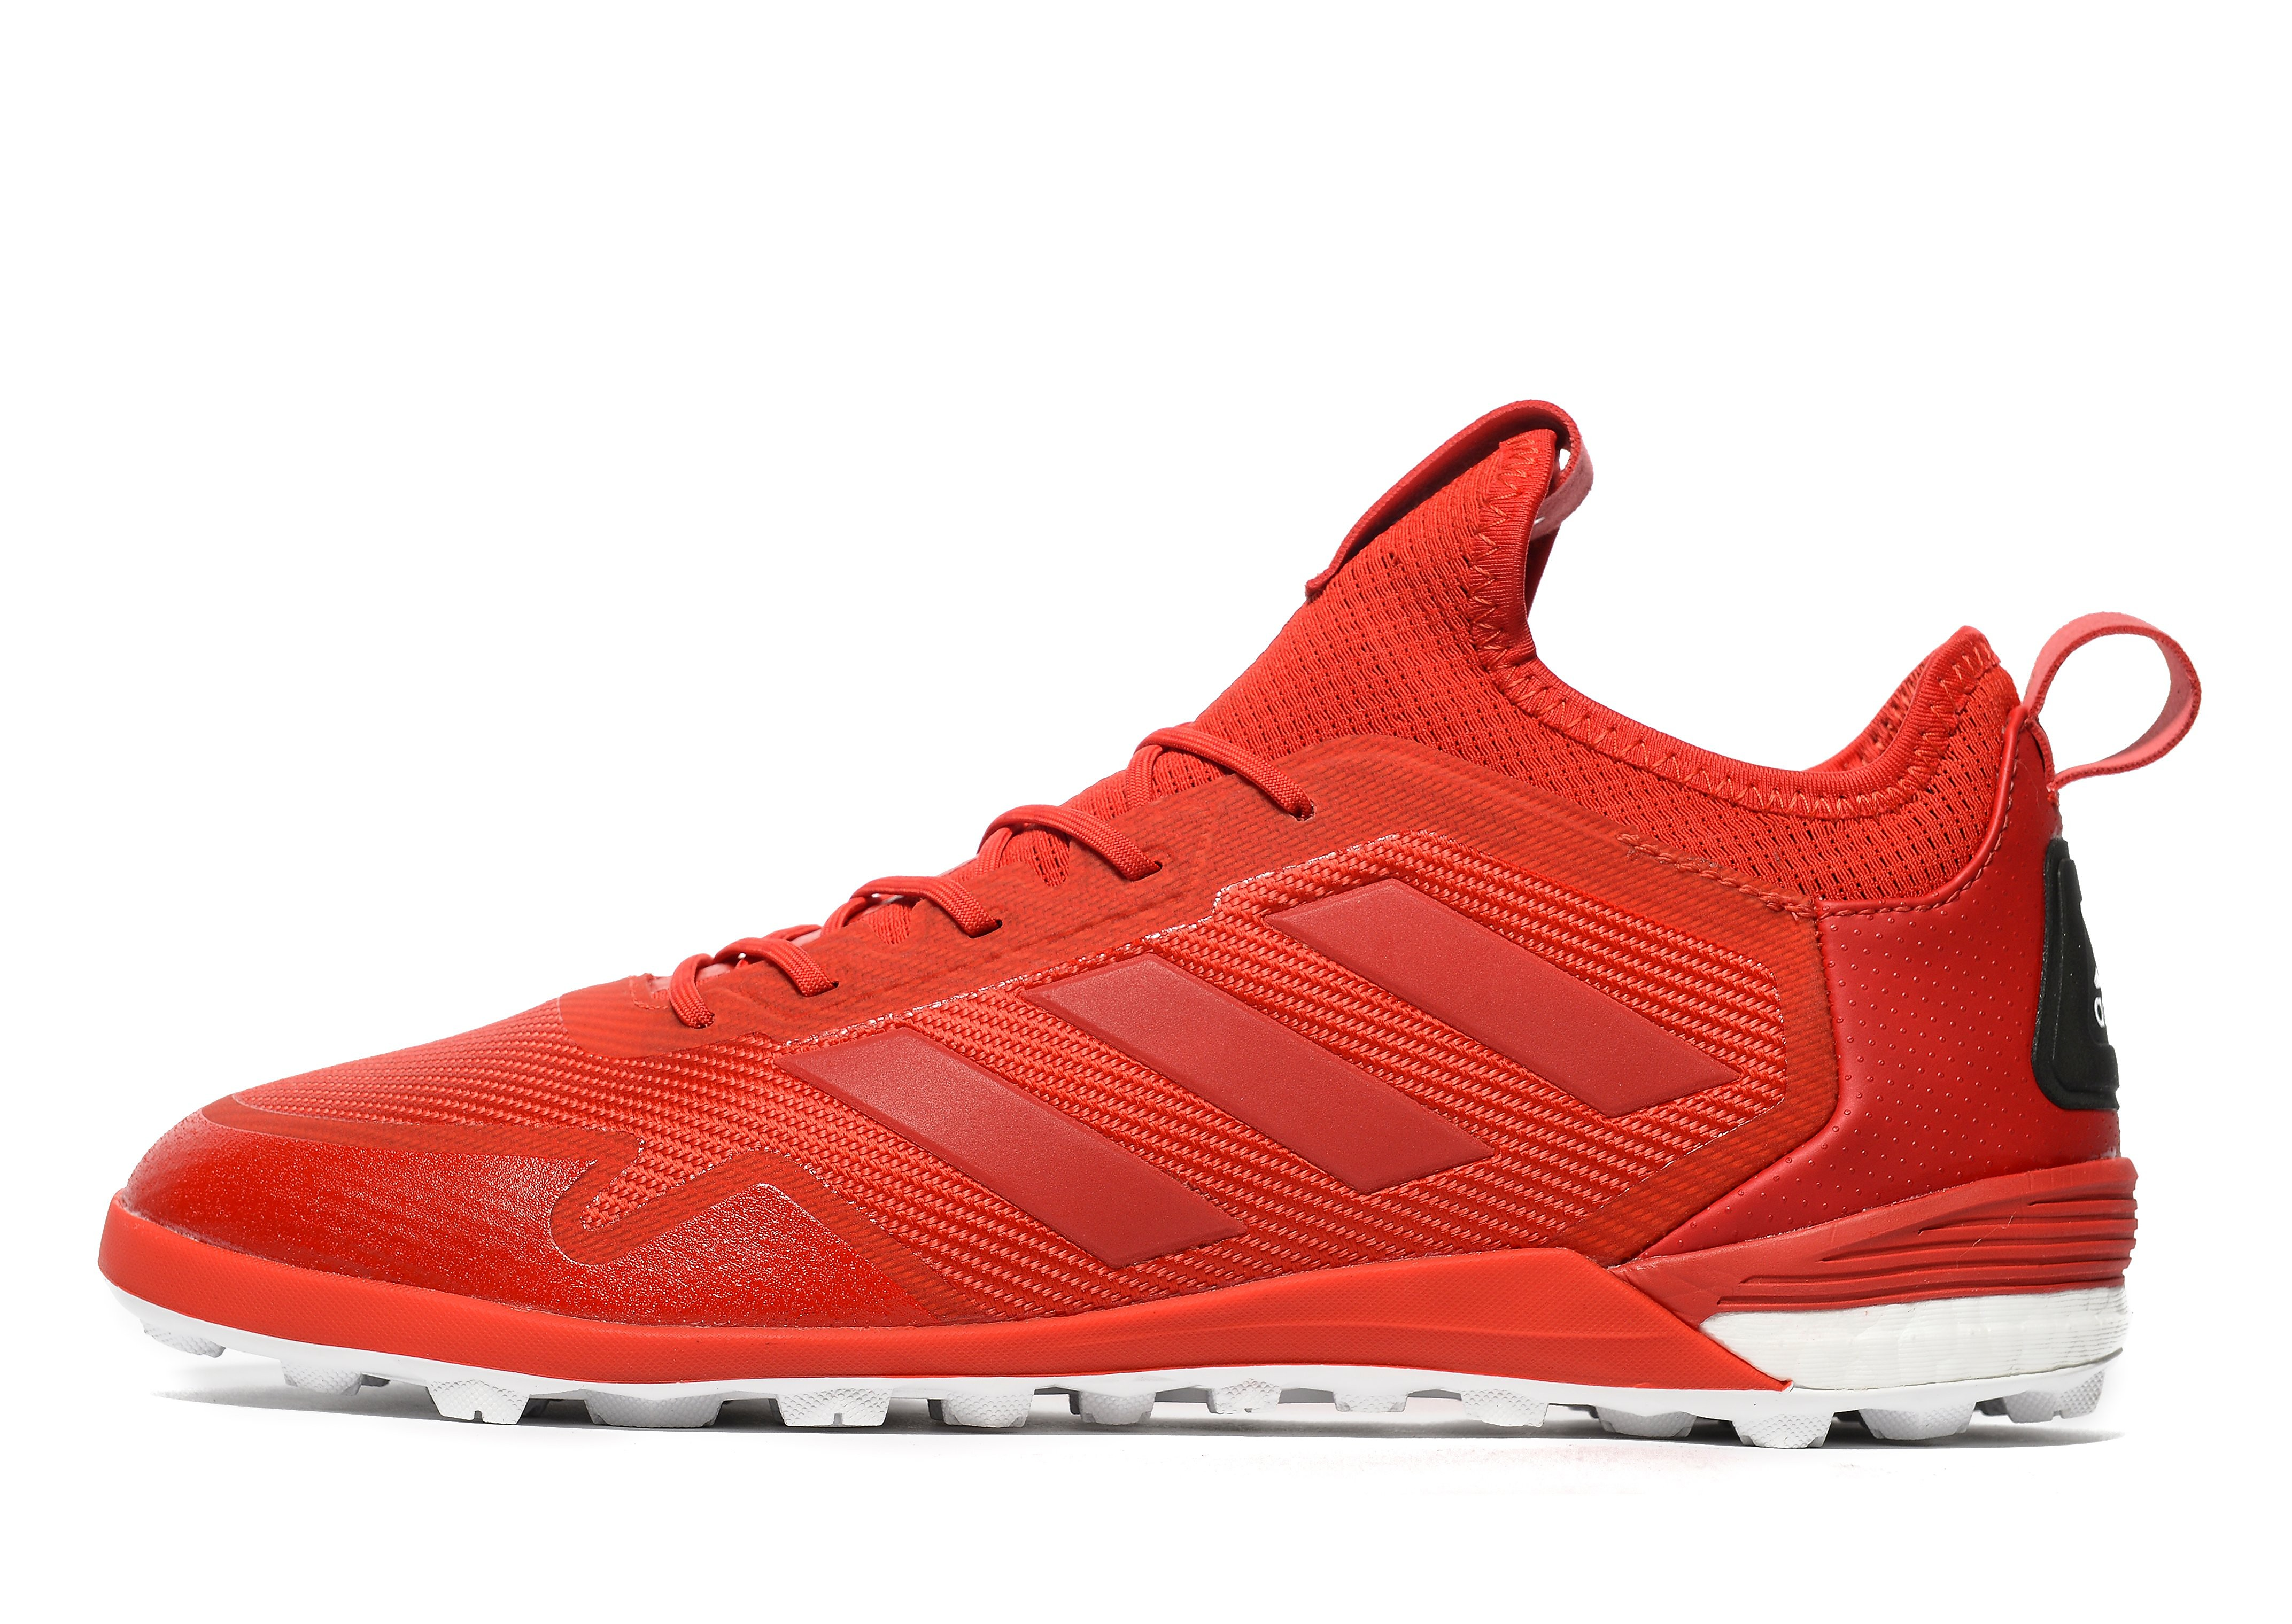 adidas Red Limit ACE Tango TR 17.1 Turf